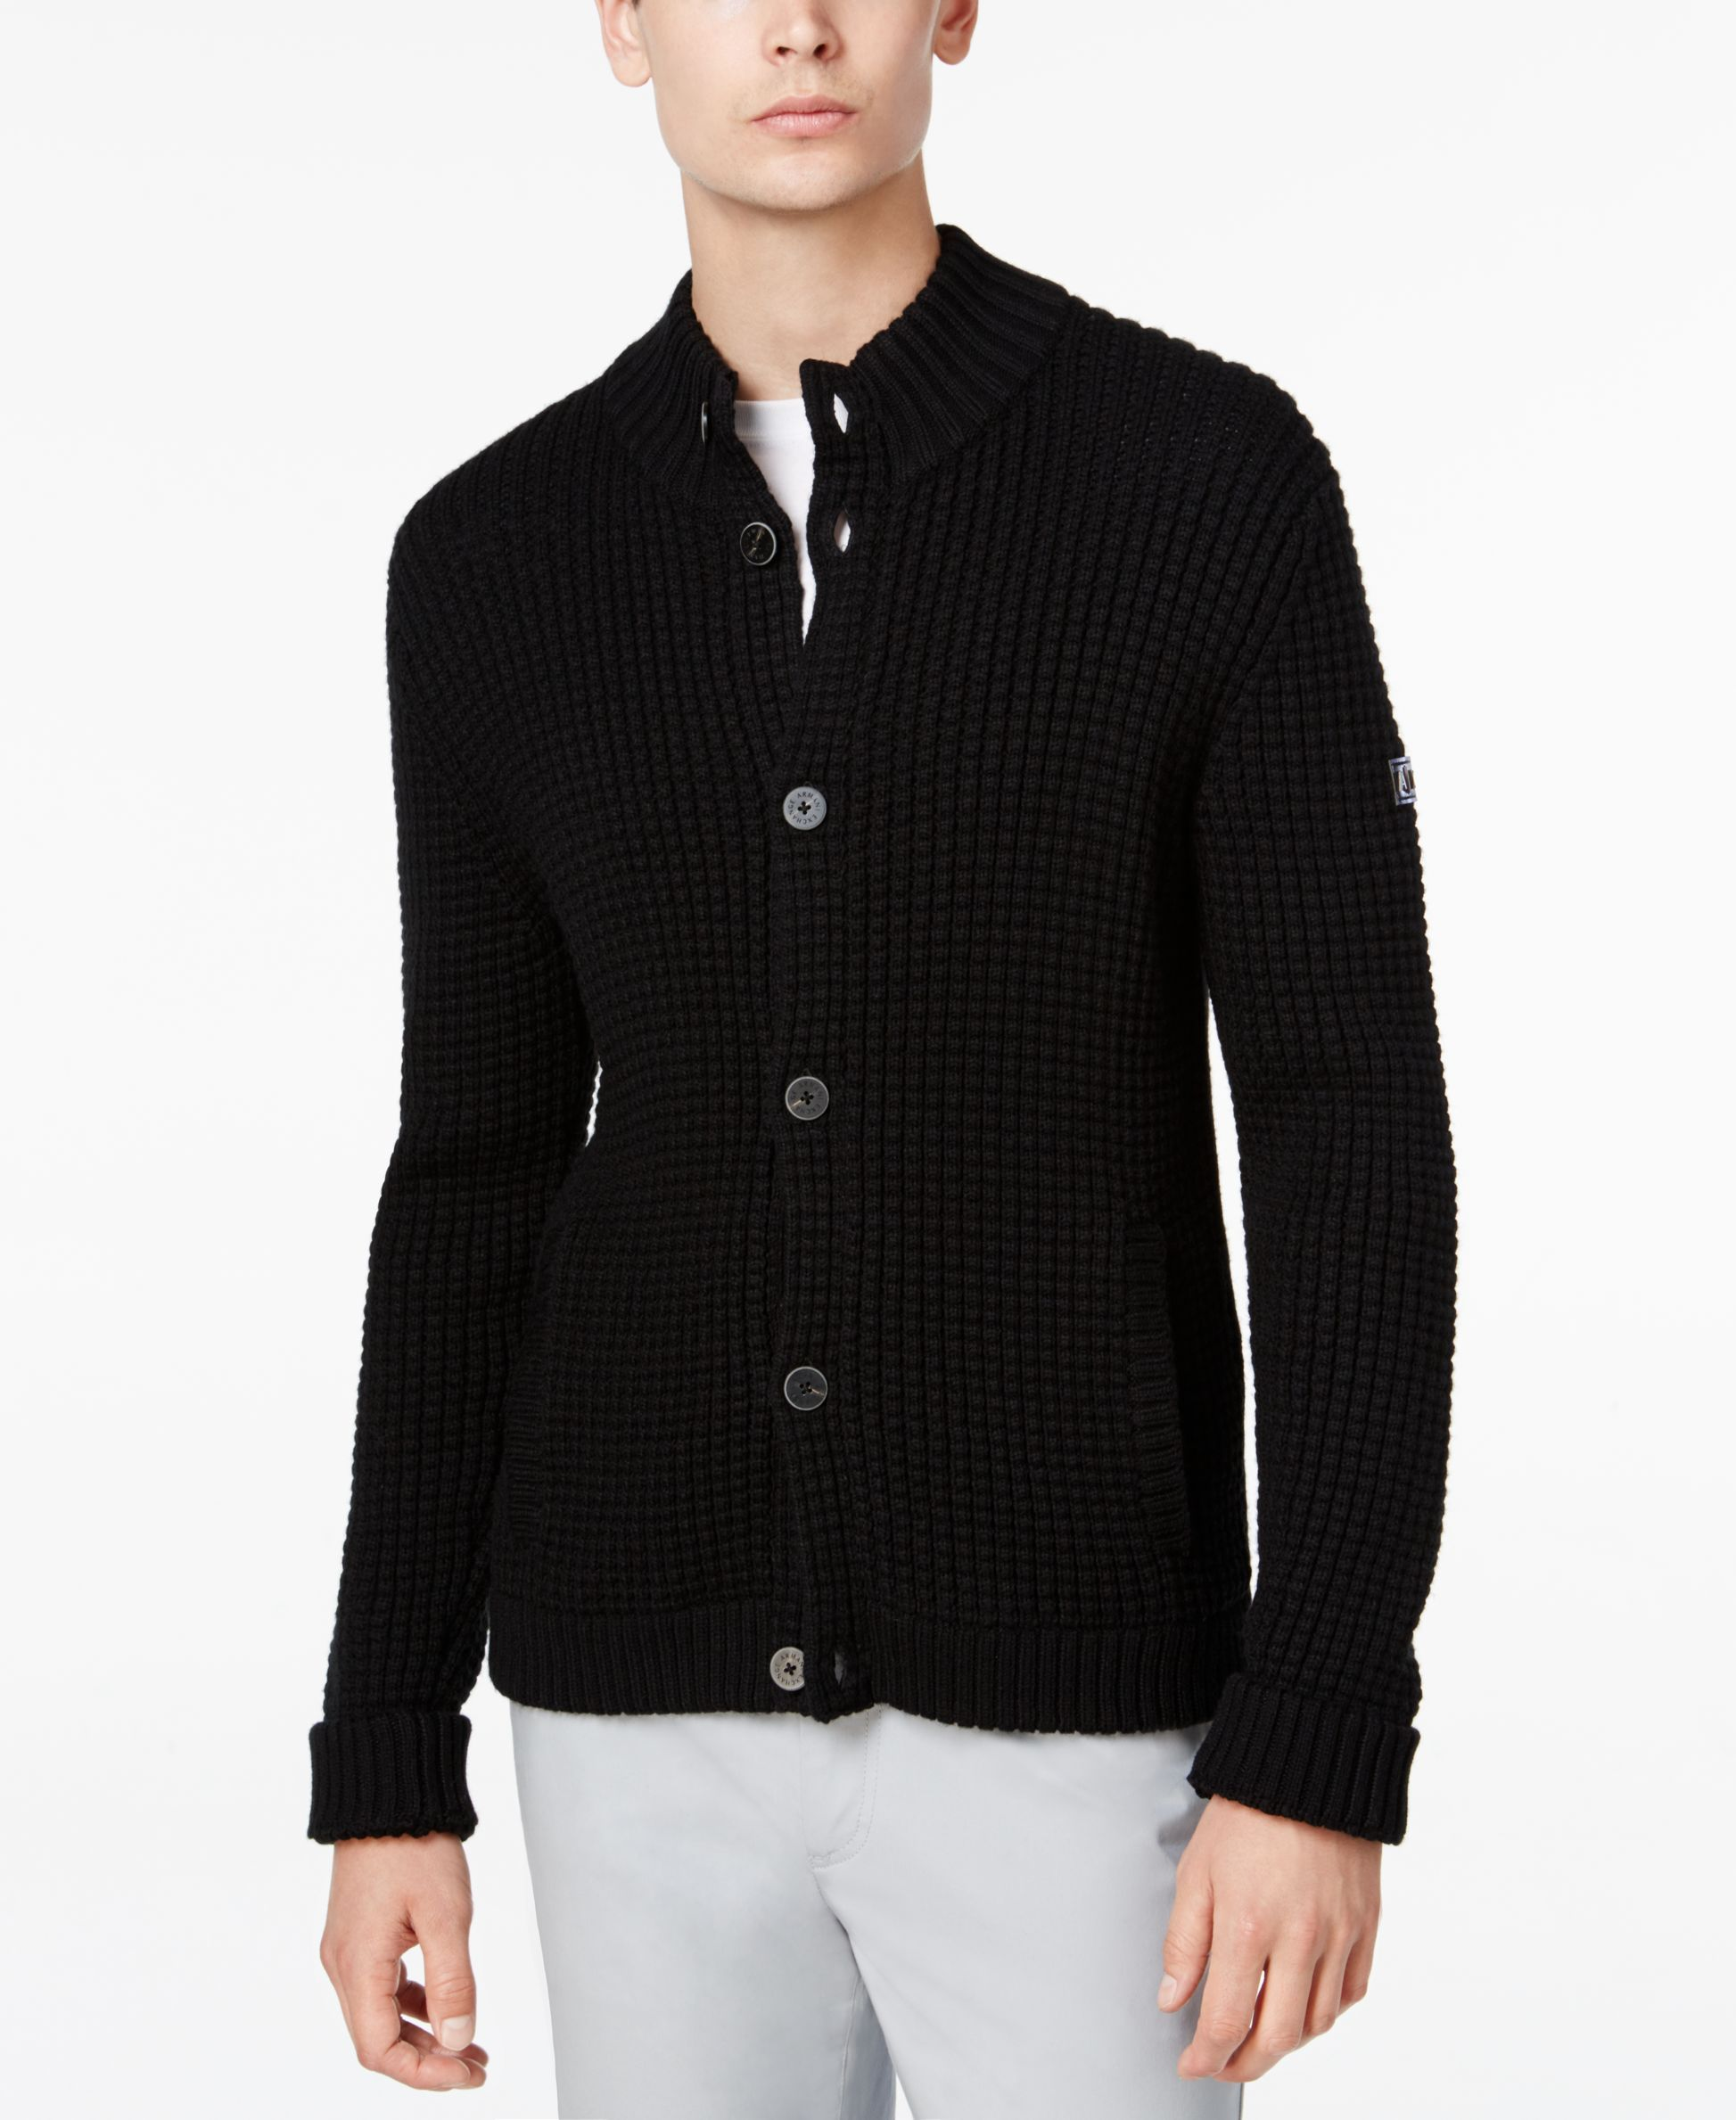 Armani Exchange Men's Button-Up Cardigan | Shops, Cardigans and ...